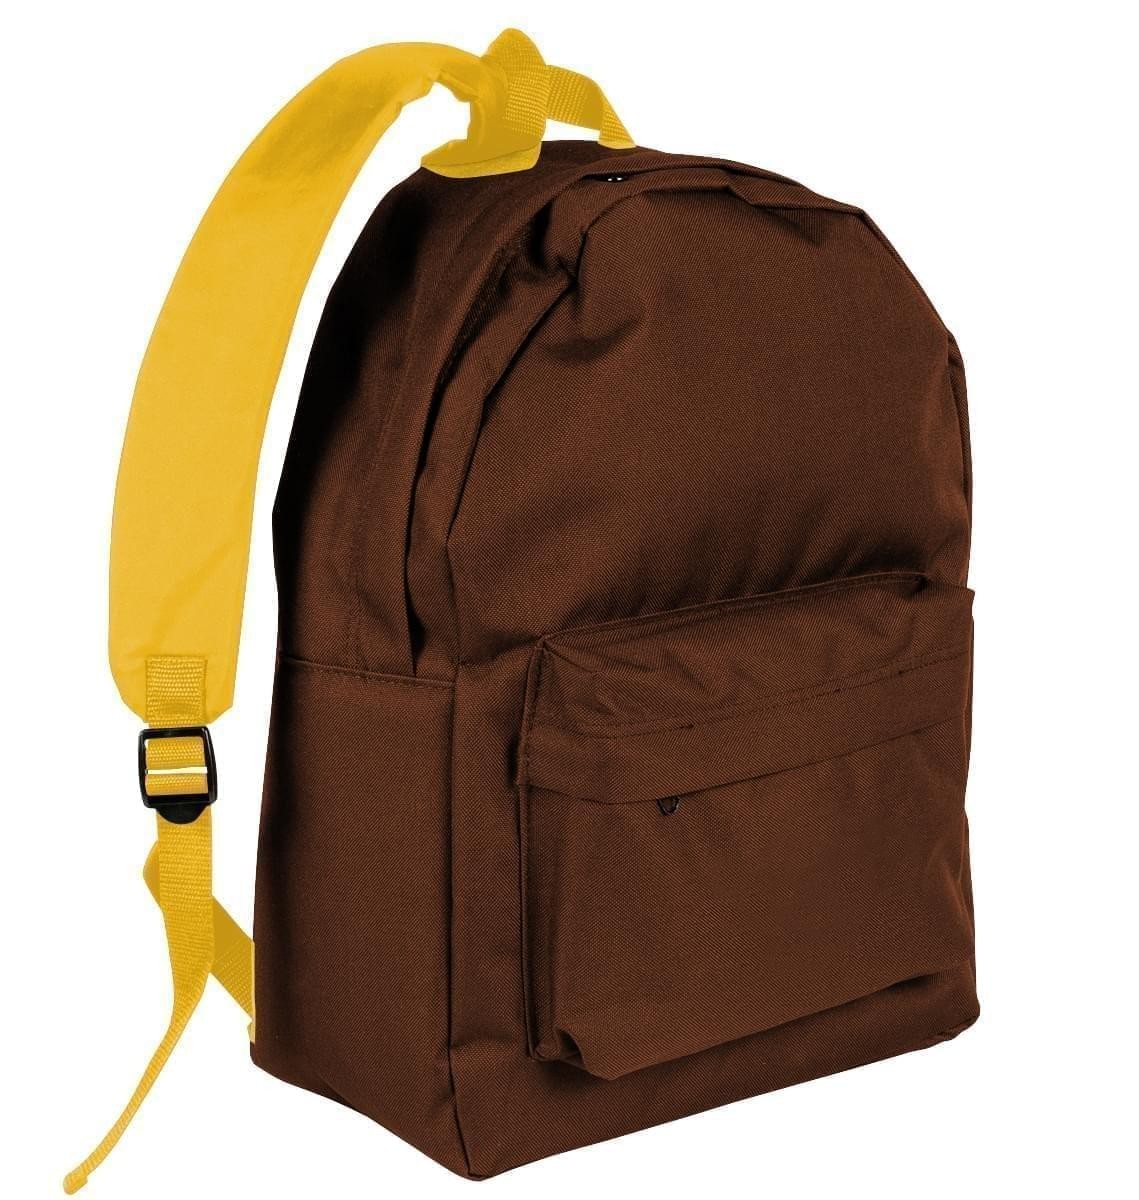 USA Made Nylon Poly Backpack Knapsacks, Brown-Gold, 8960-AP5